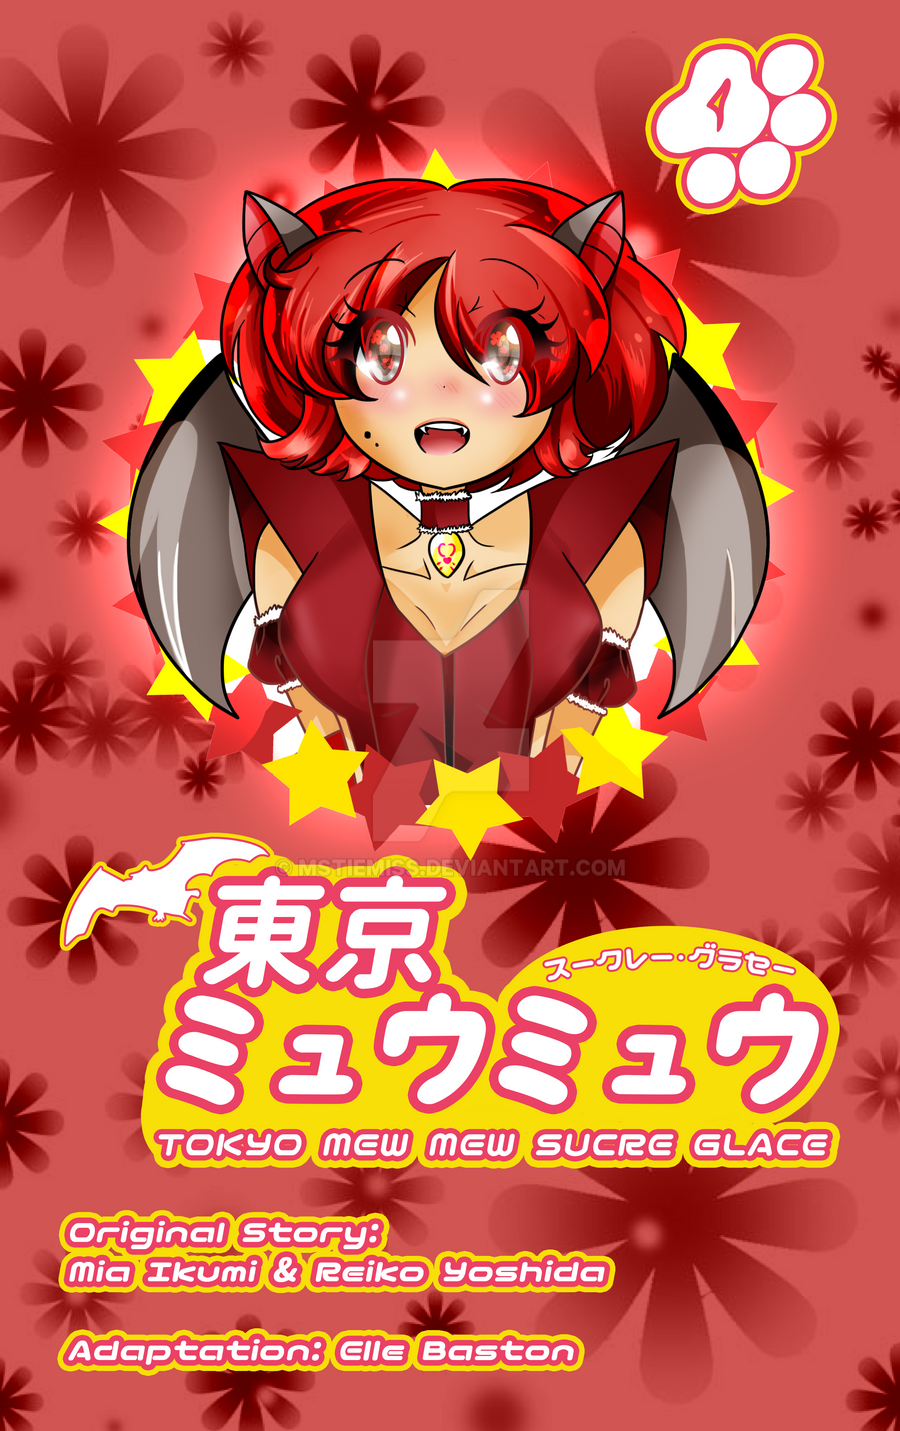 Tokyo Mew Mew Sucre Glace | Volume 1 Cover (ver2) by MSTieMiss